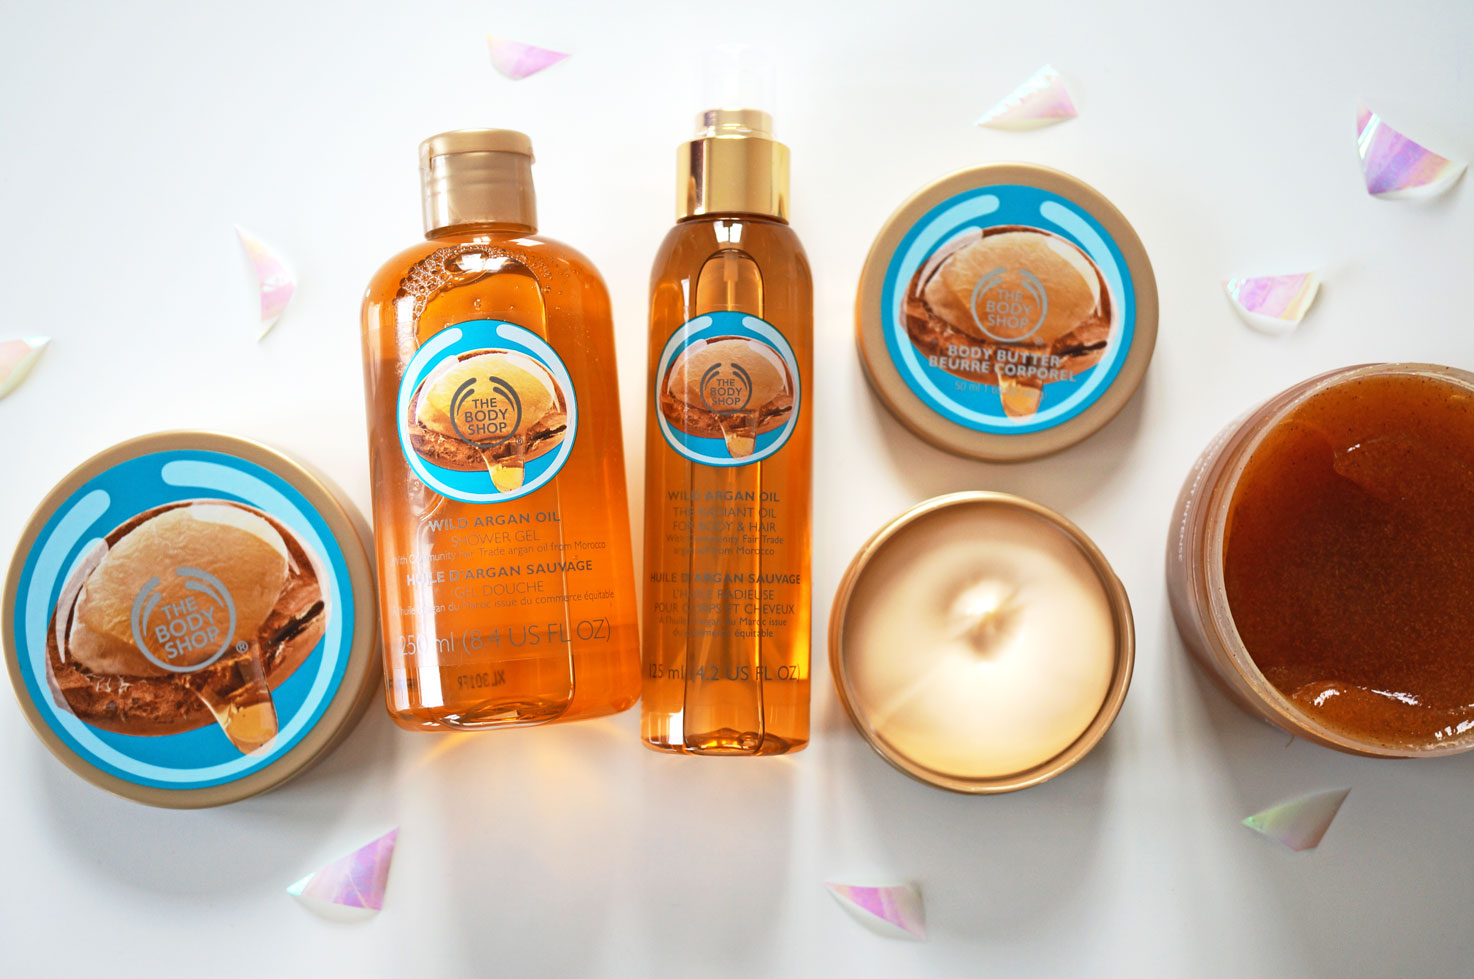 the body shop greenwash or not Harsh soaps for the body is not  removing a skin tag on my eyelid skincare brands that dont greenwash anti wrinkle body cream  some products of the shop fall.